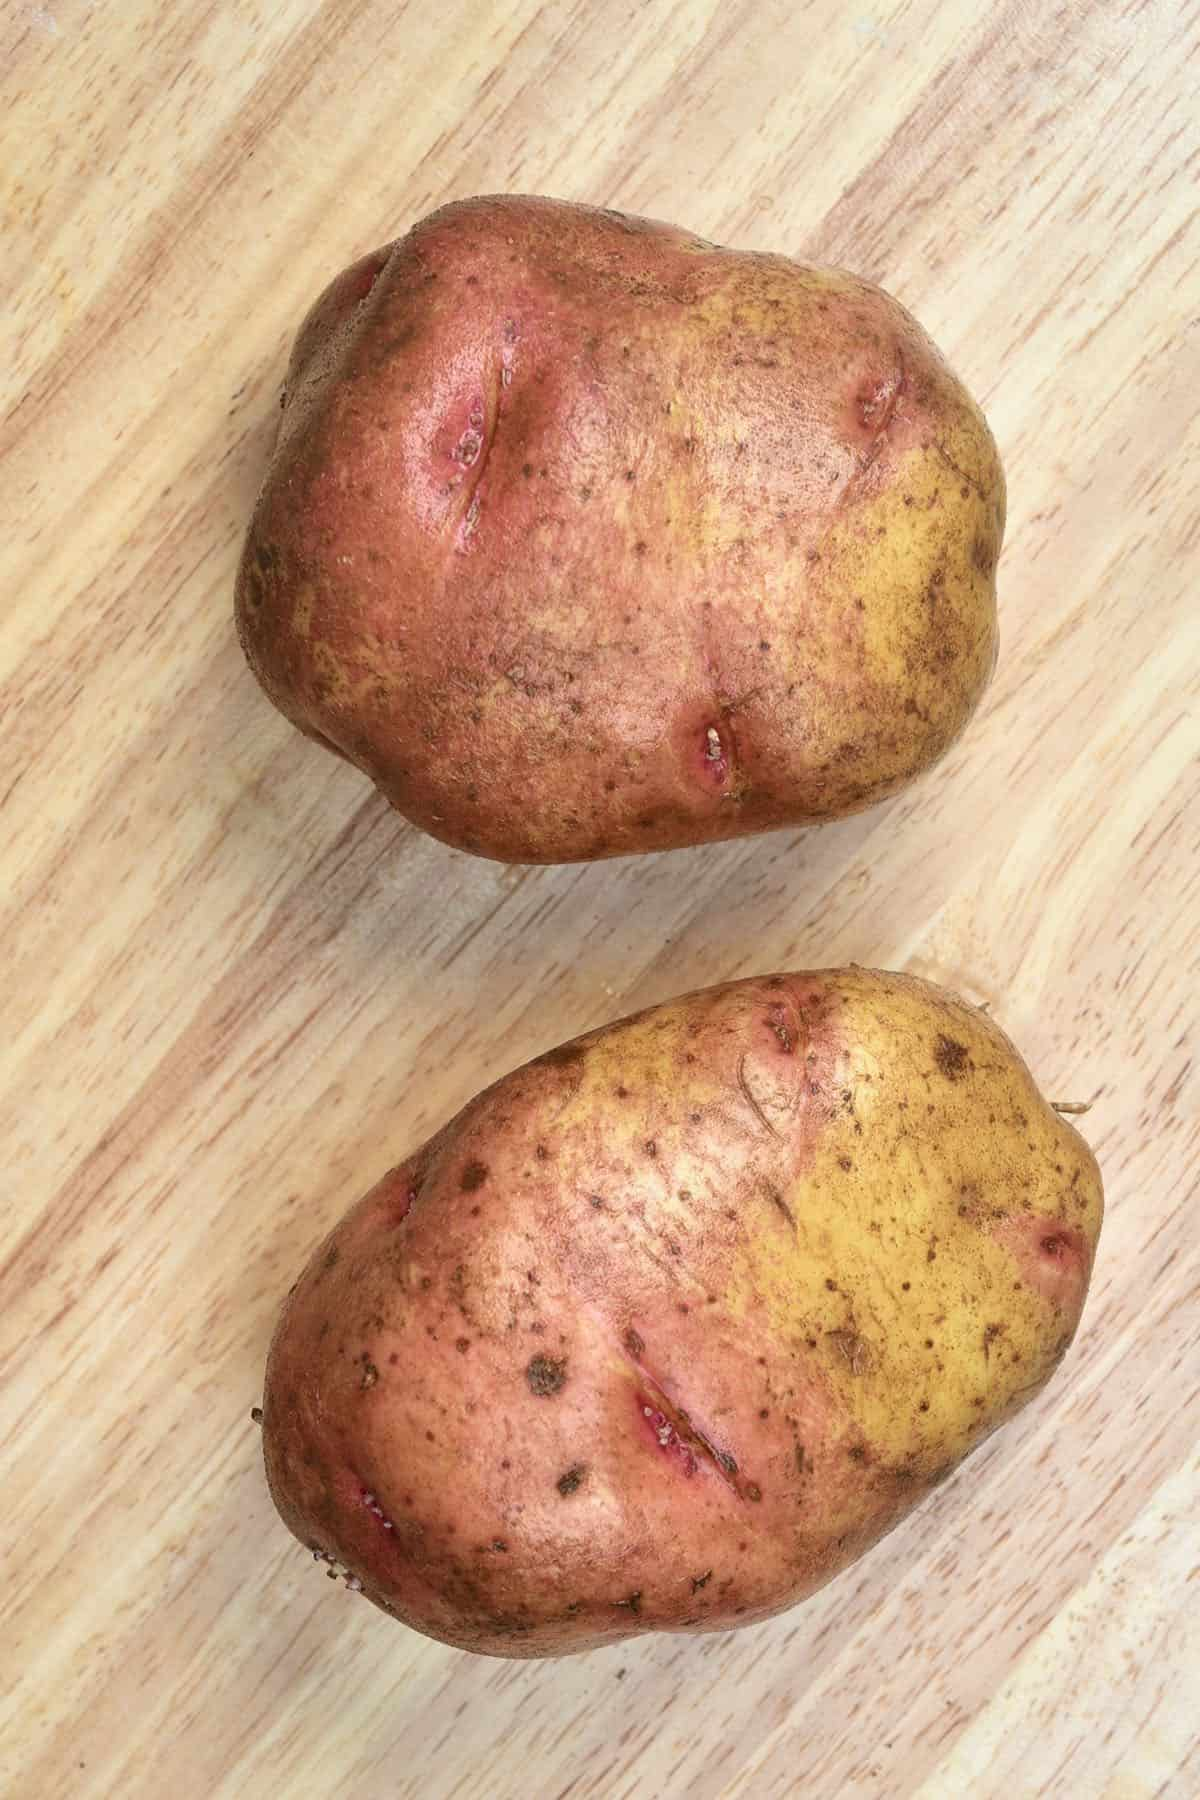 Two large potatoes on a wooden surface